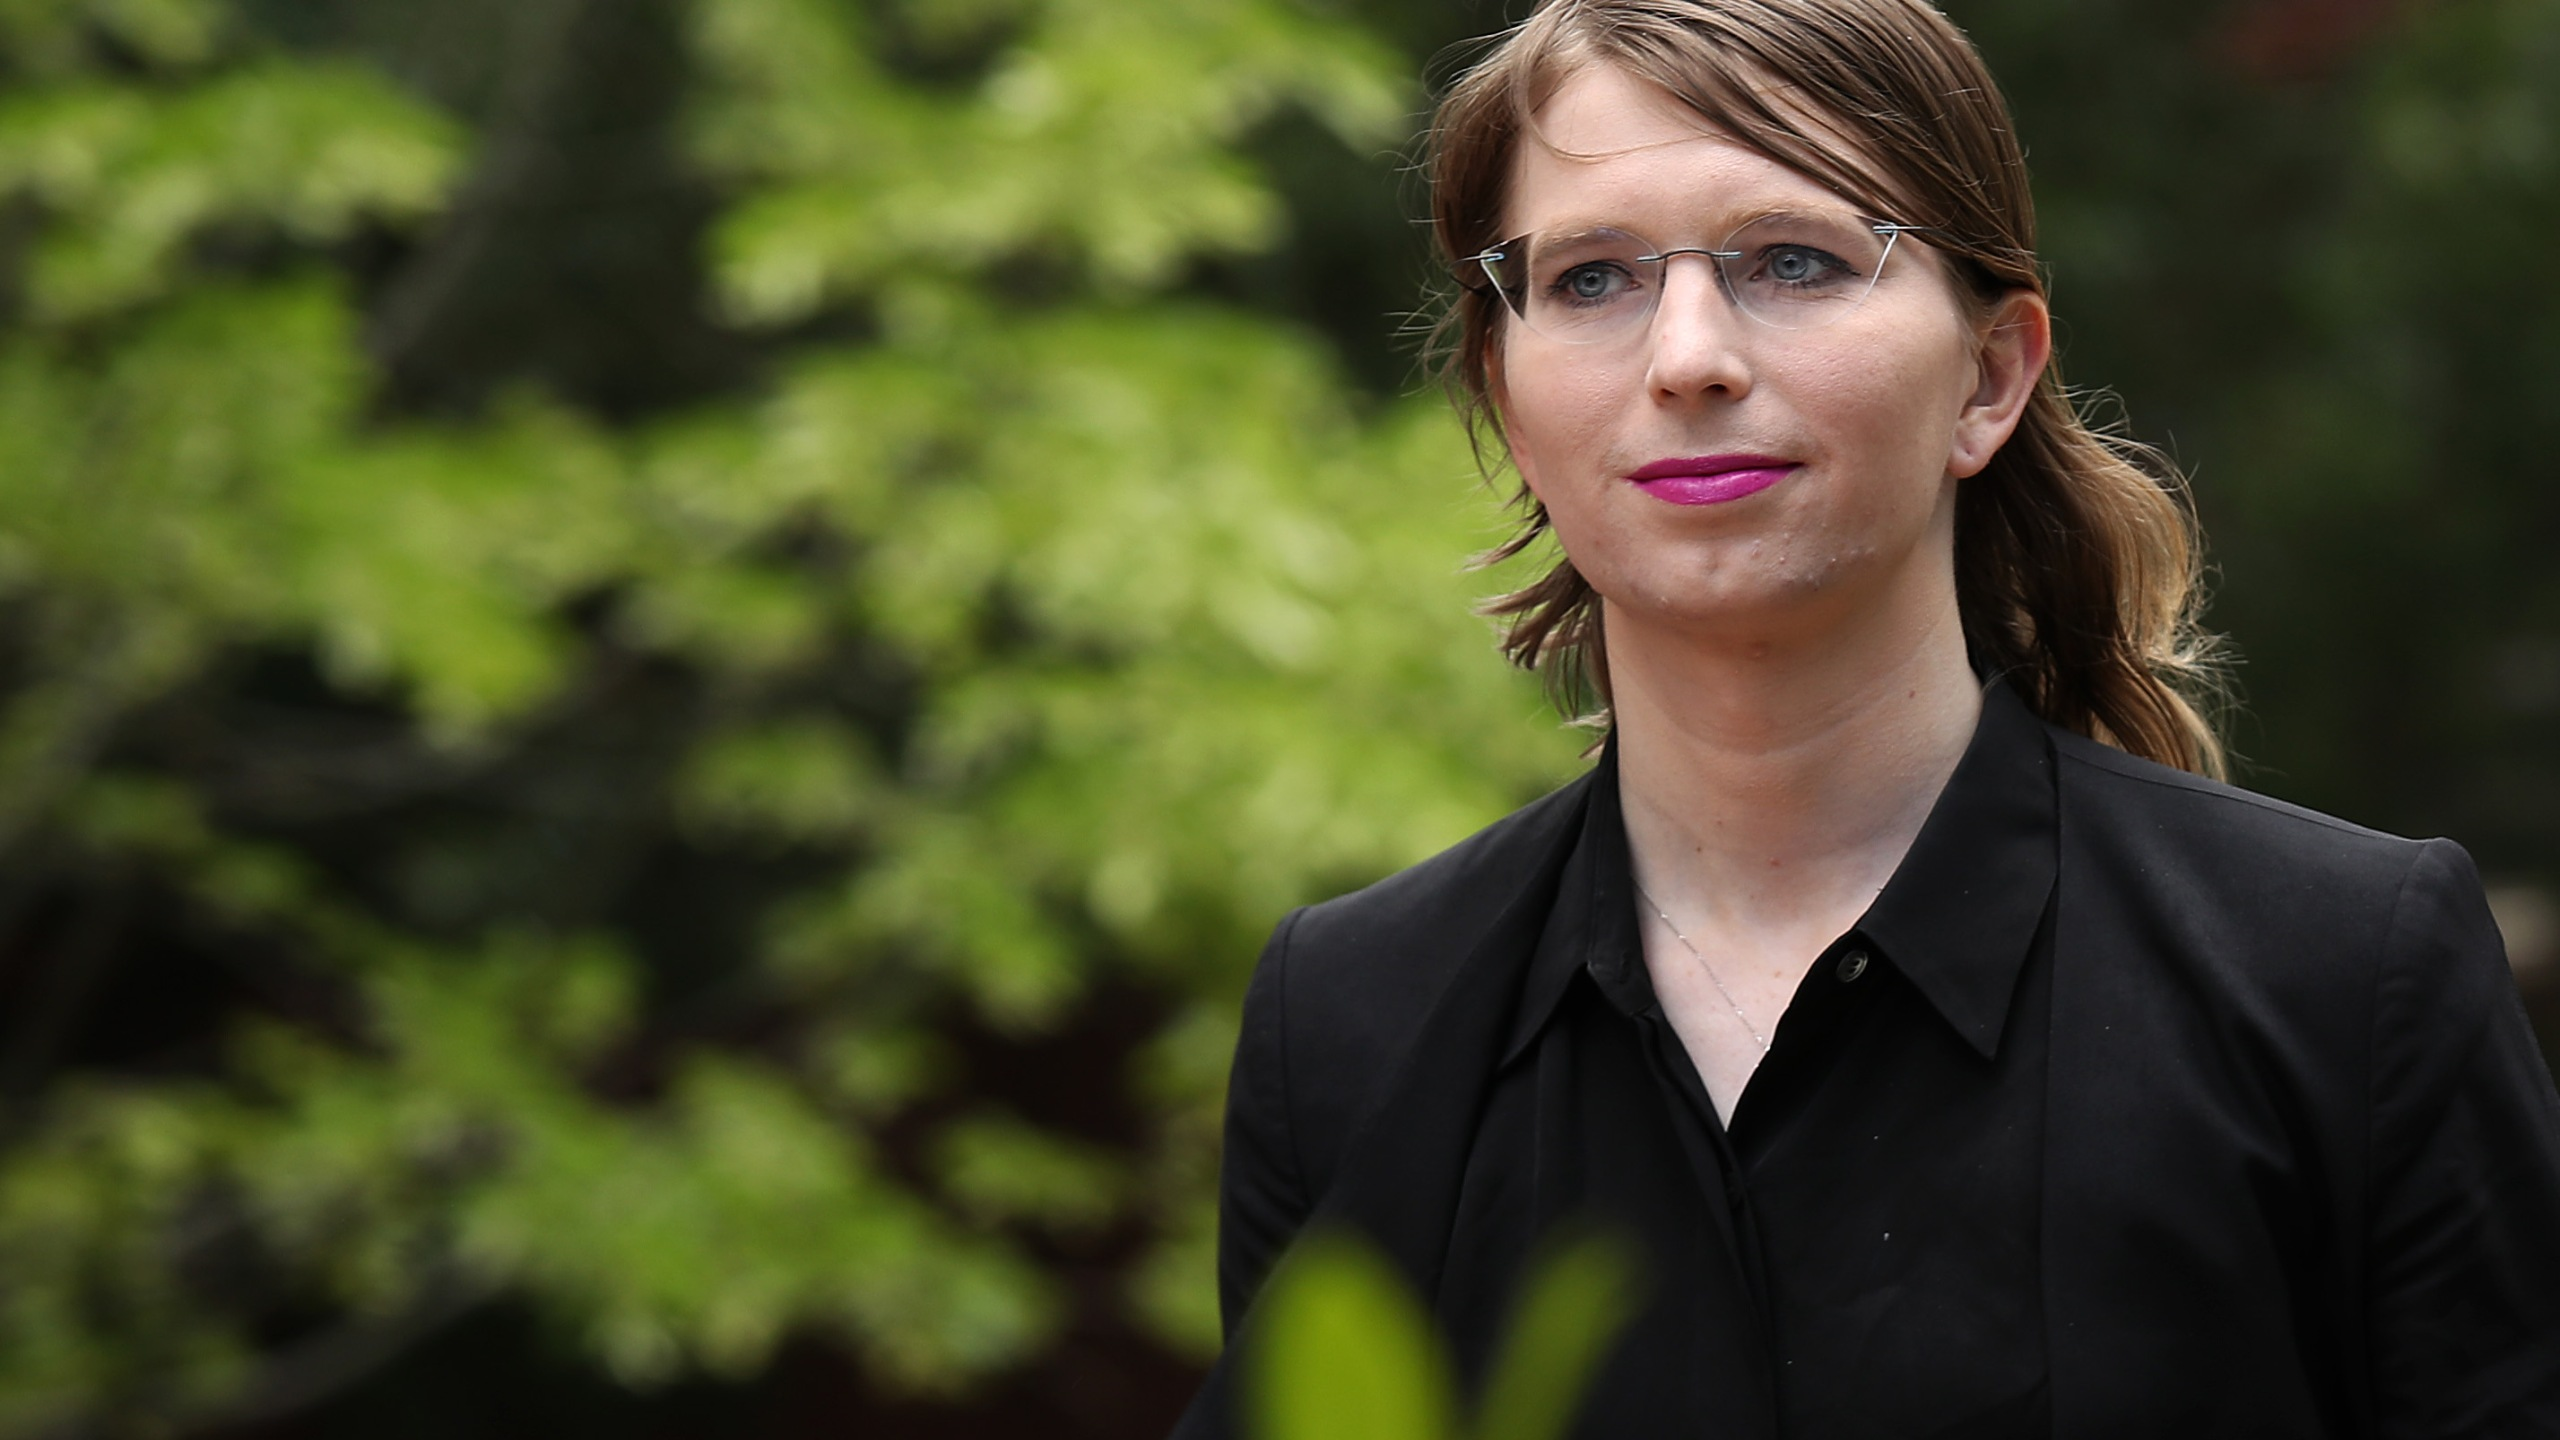 Former U.S. Army intelligence analyst Chelsea Manning arrives at the Albert Bryan U.S federal courthouse May 16, 2019, in Alexandria, Va. (Credit: Win McNamee/Getty Images)